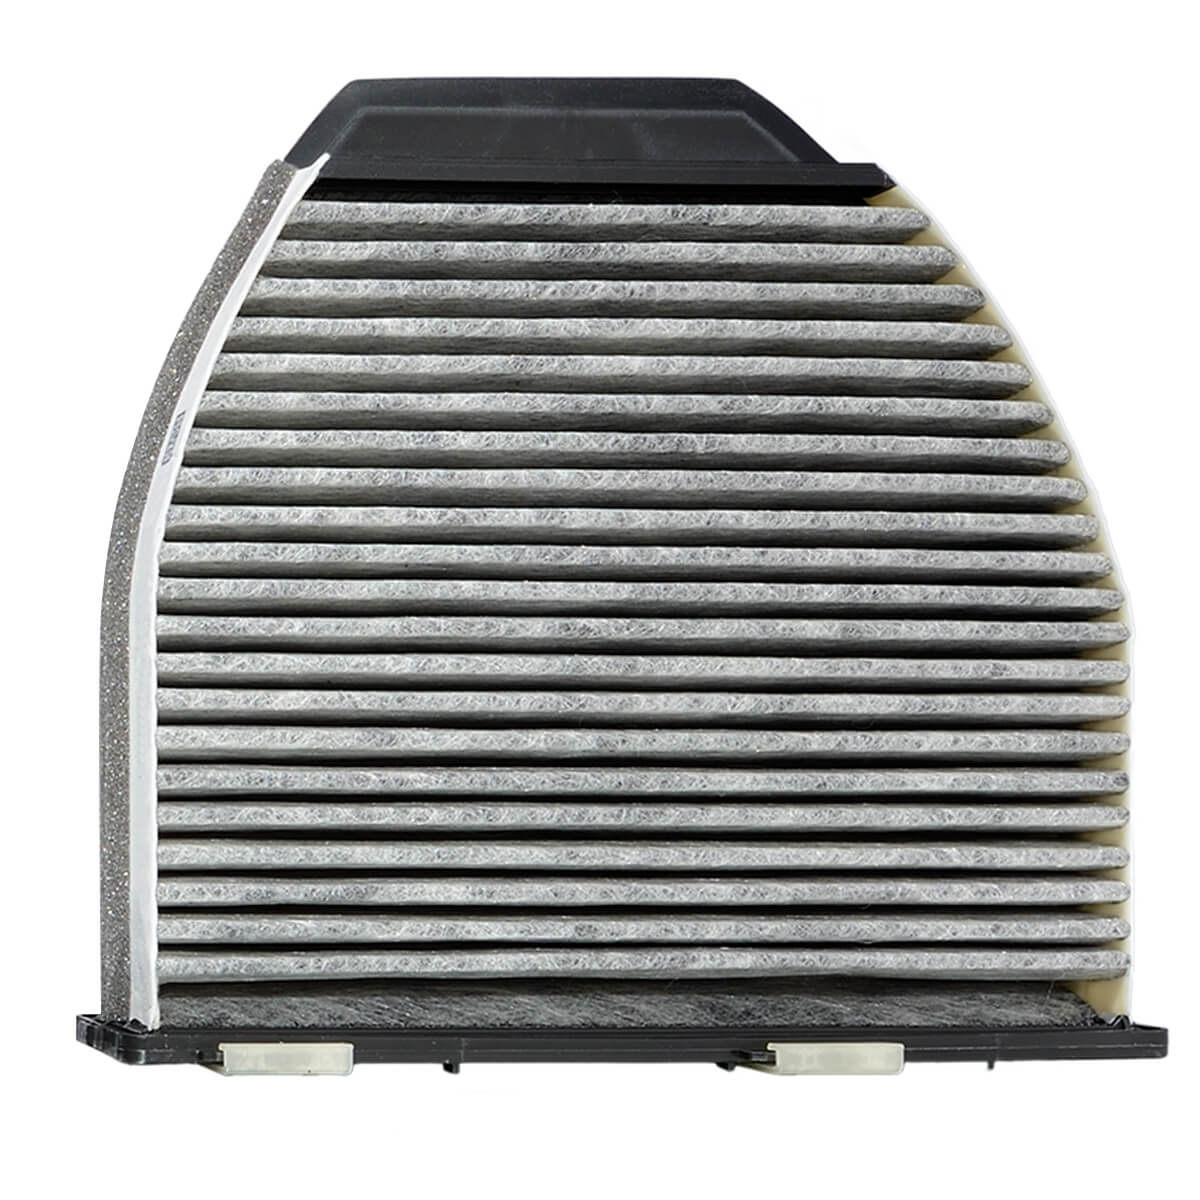 CITROEN C4 GRAND PICASSO Cabin Filter